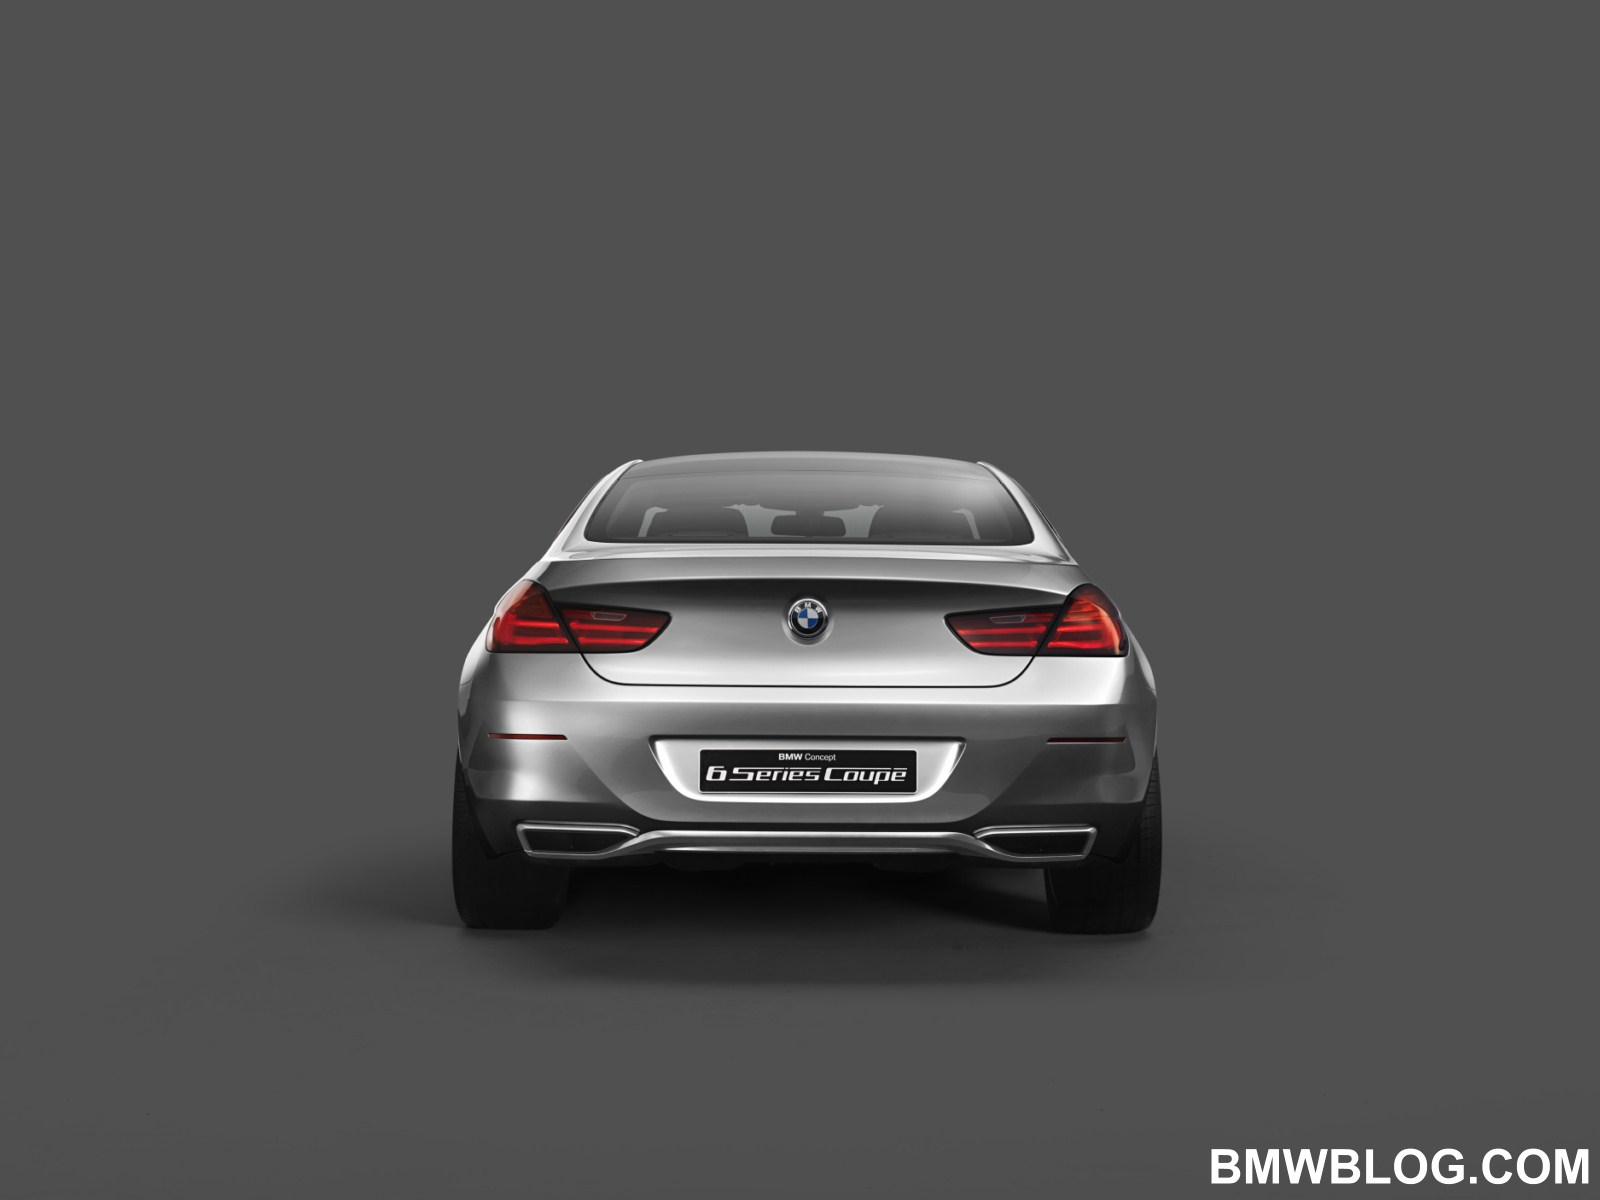 2019 BMW 6 Series Coupe Concept photo - 5